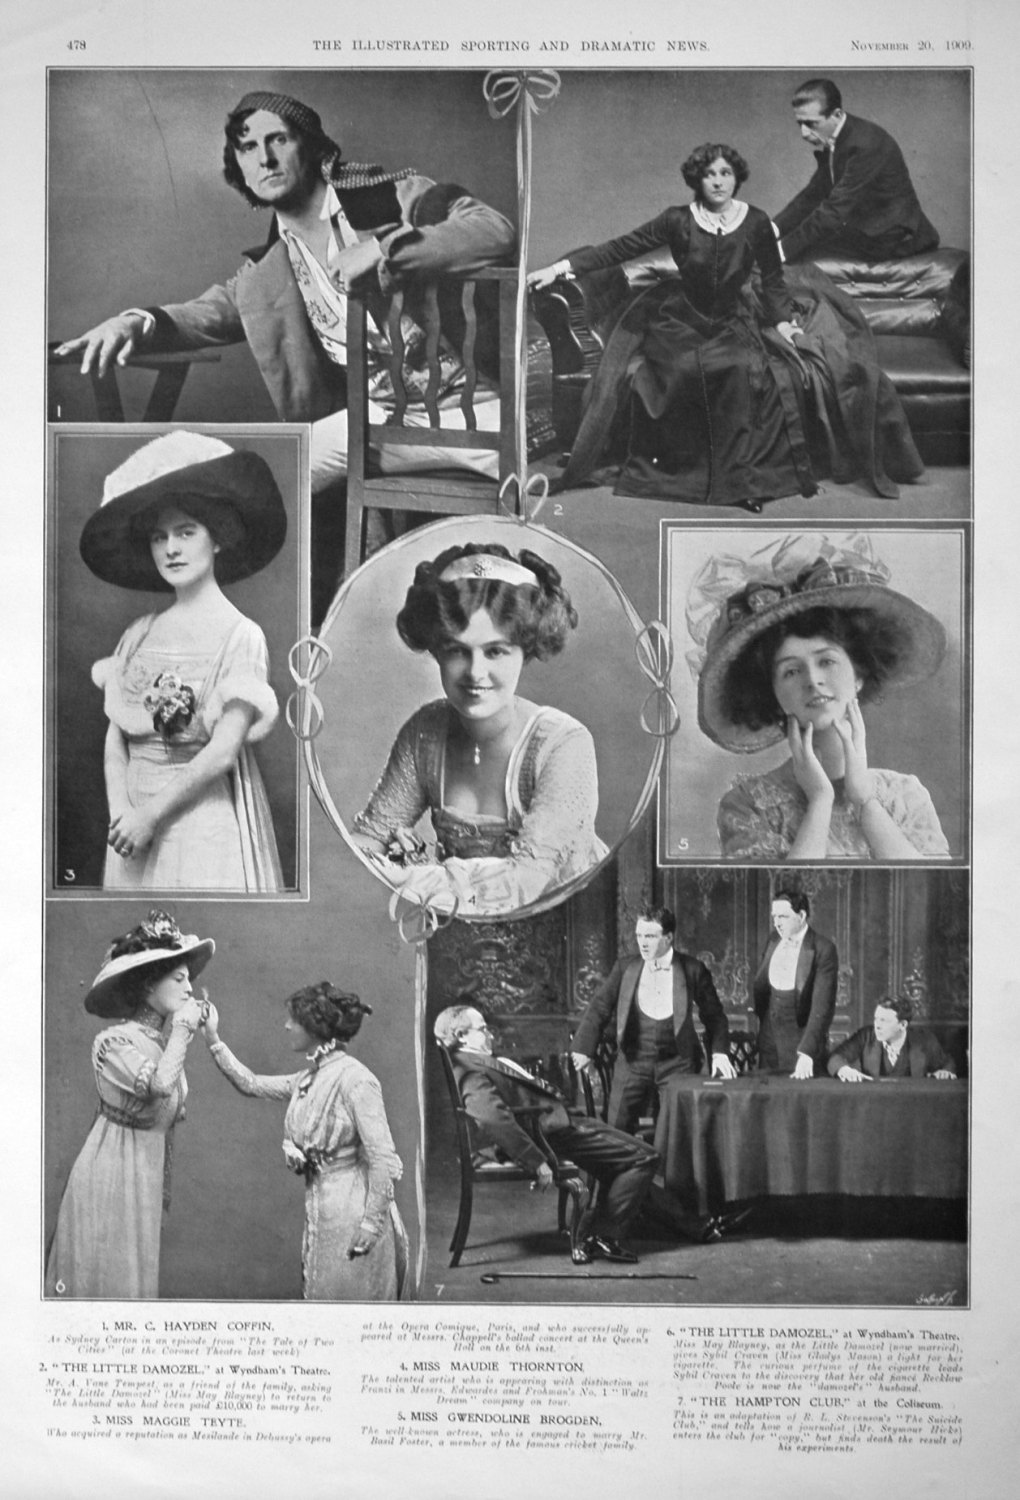 Actors & Actresses from the Stage. 1909